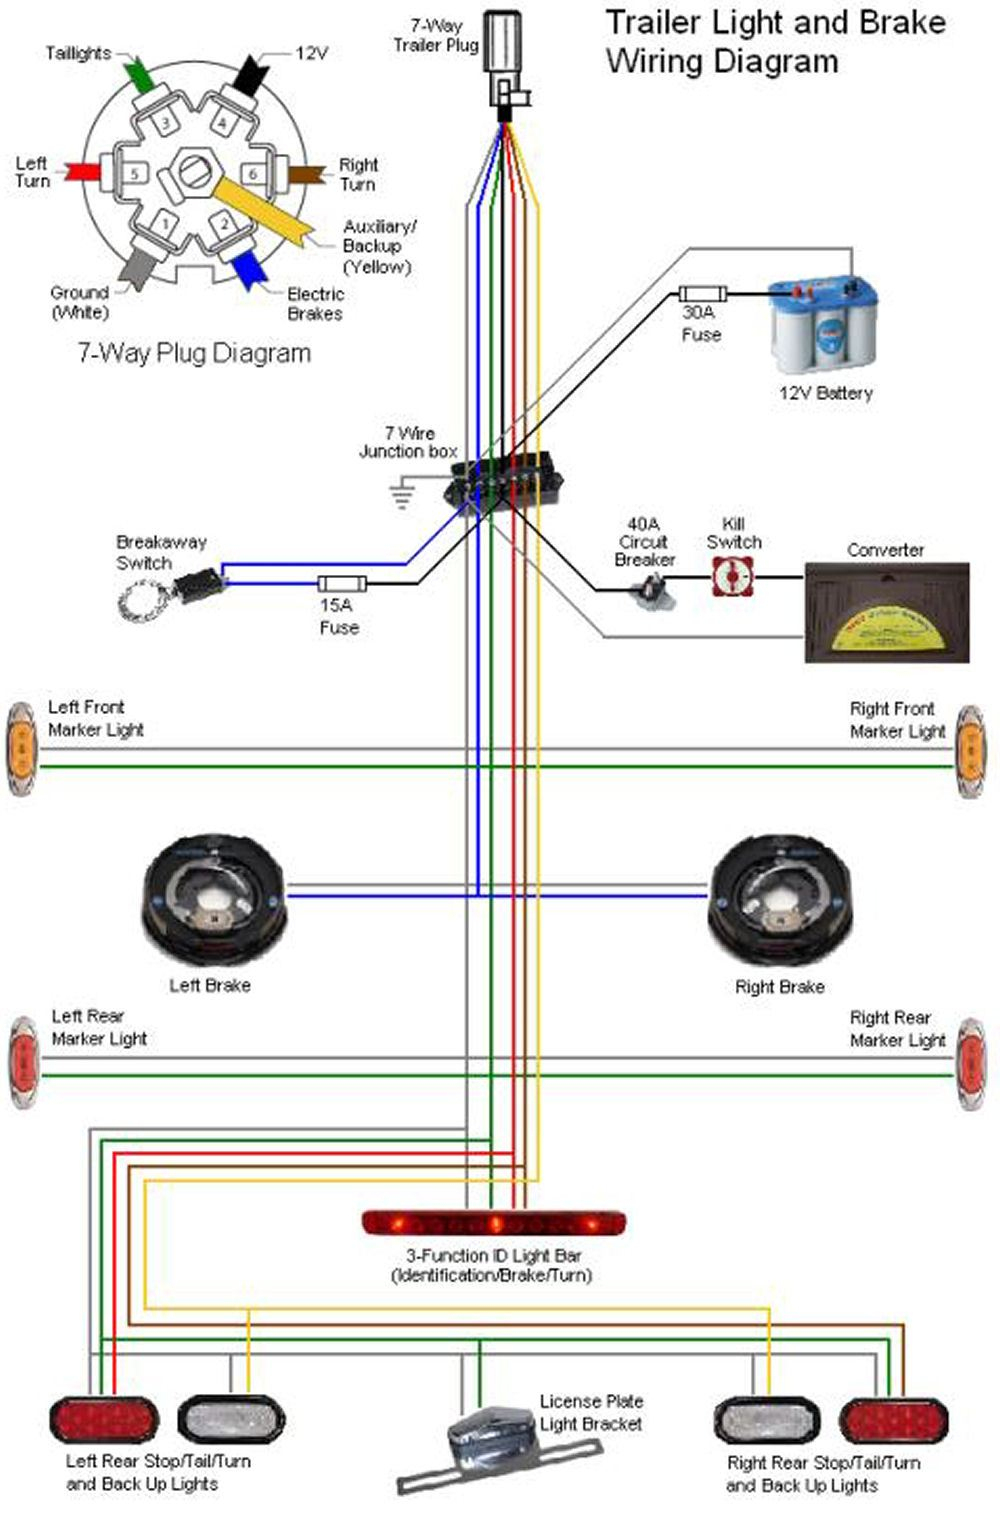 7 Pin Trailer Light Wiring Diagram With Brakes   Wiring Diagram - Wiring Diagram For Trailer Lights And Electric Brakes